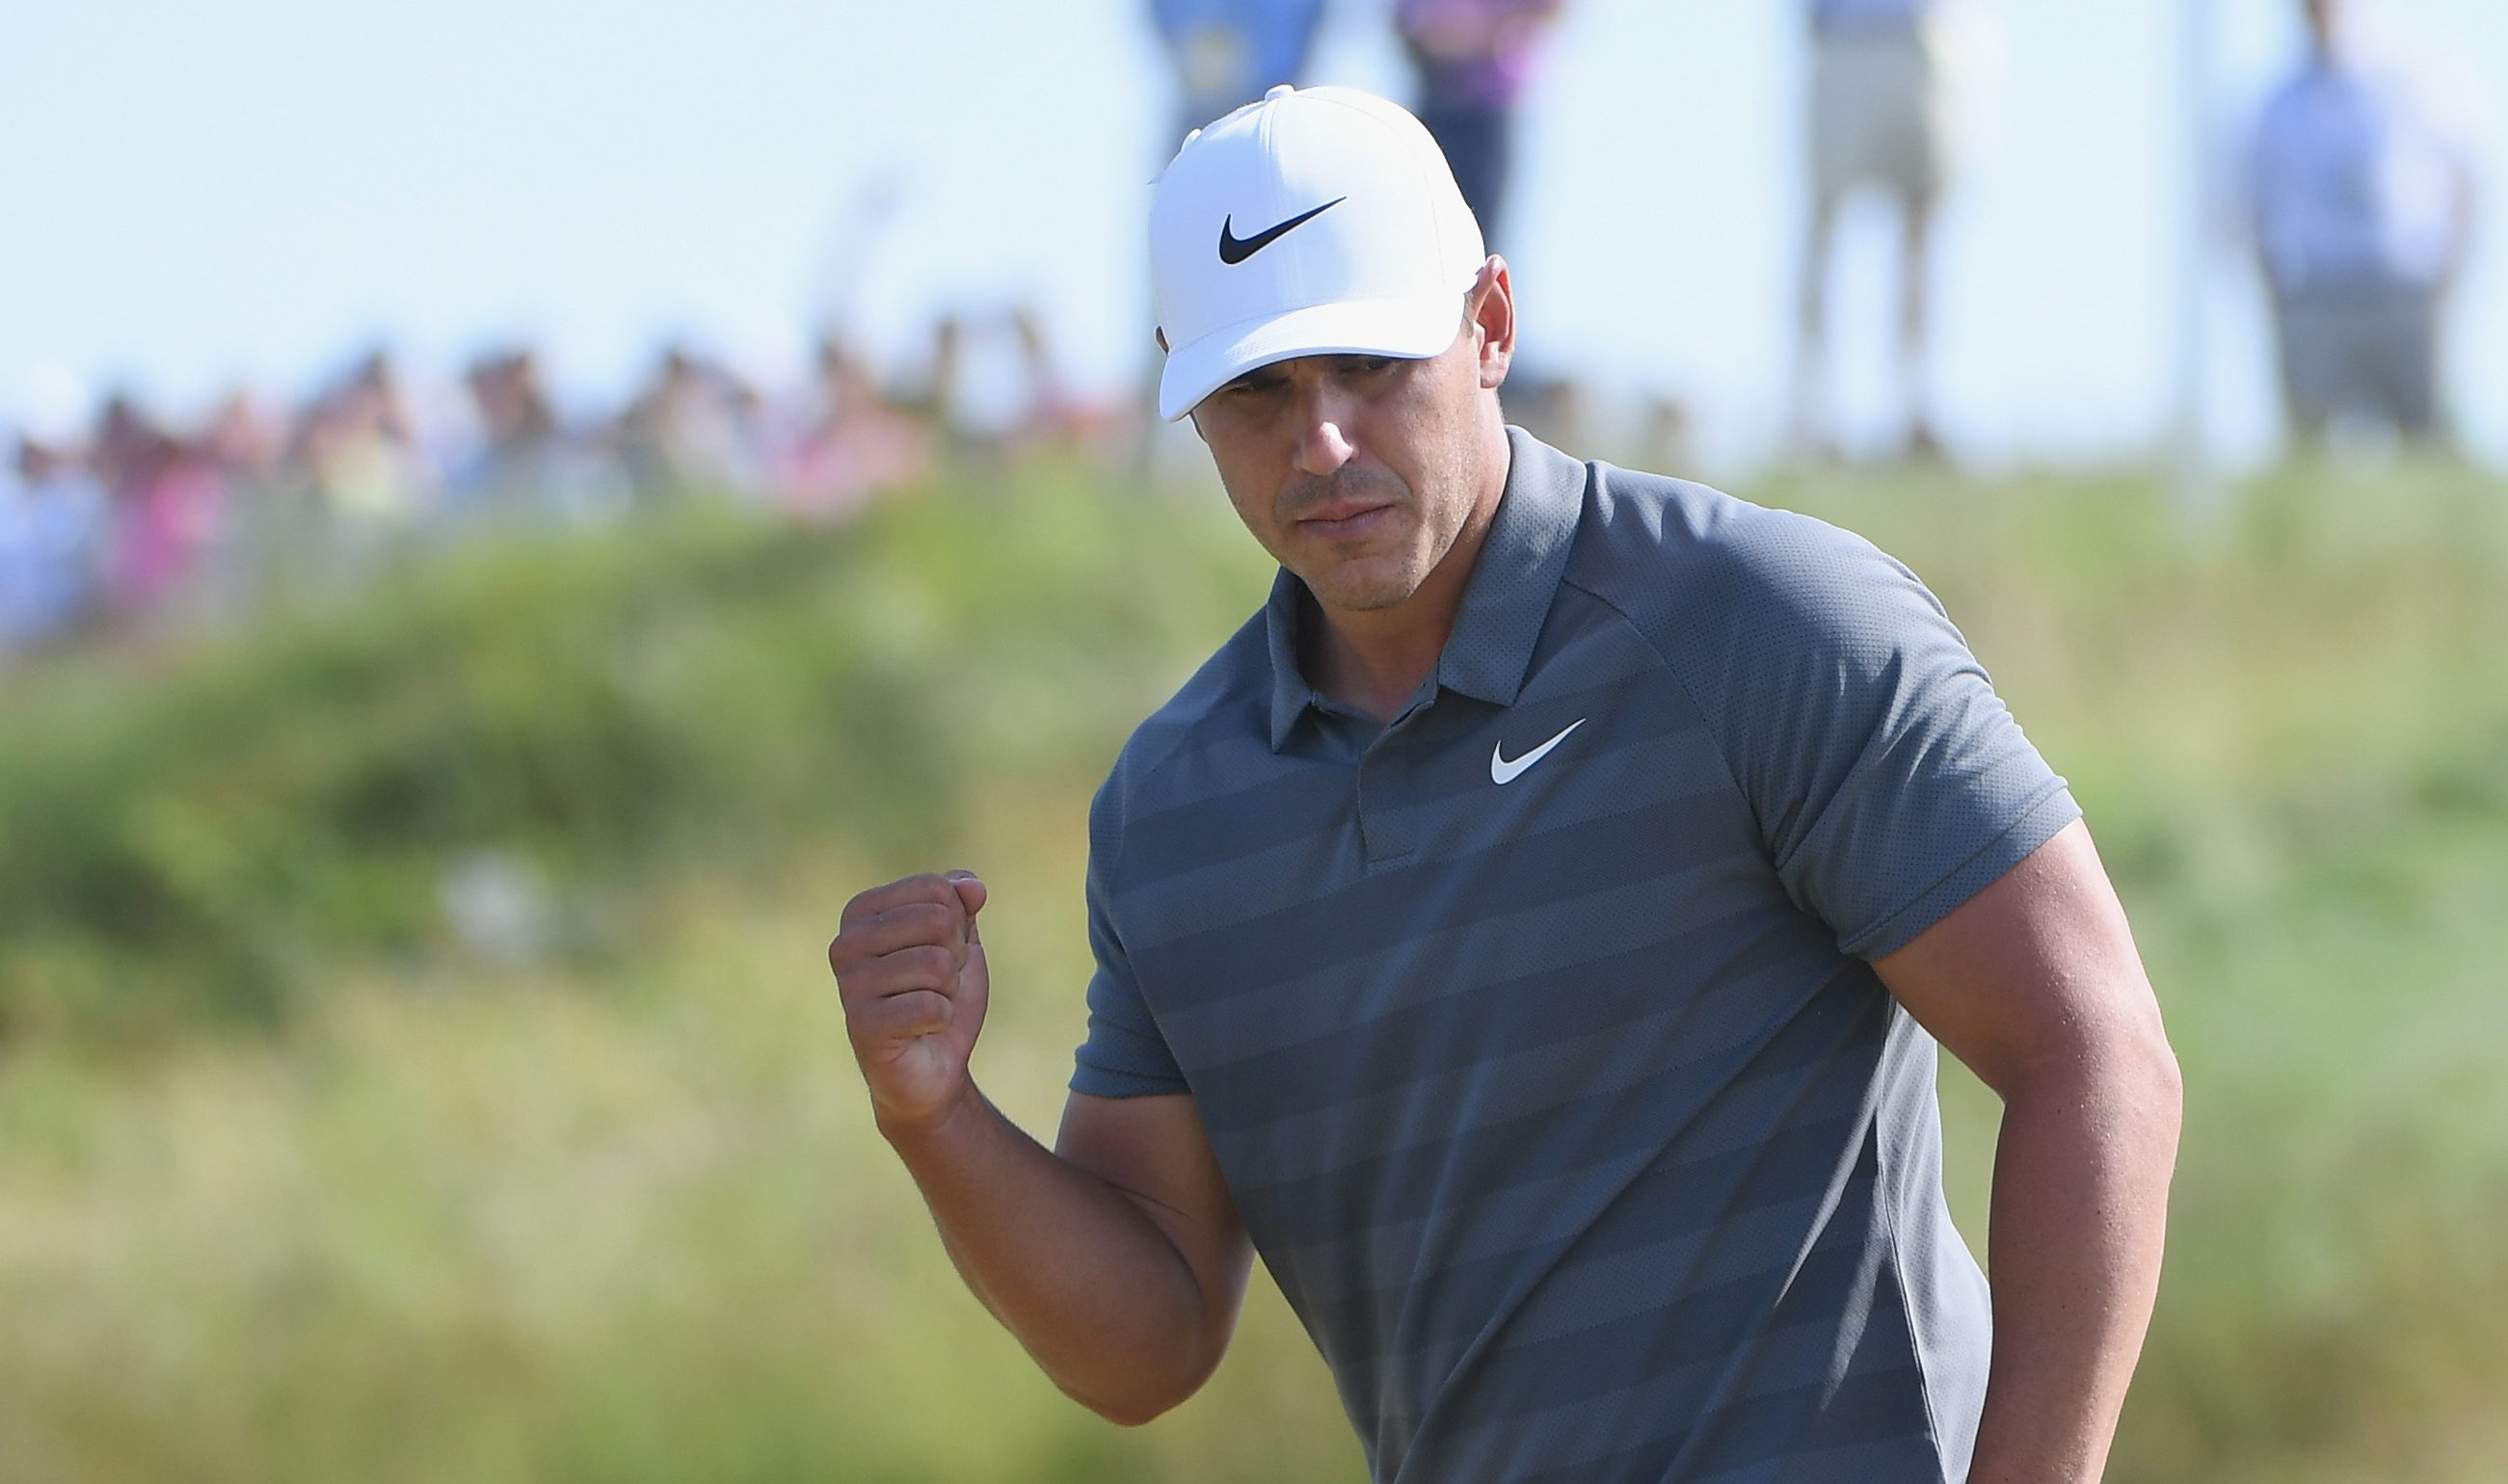 SOUTHAMPTON, NY - JUNE 17: Brooks Koepka of the United States reacts to a putt on the 11th green during the final round of the 2018 U.S. Open at Shinnecock Hills Golf Club on June 17, 2018 in Southampton, New York. (Photo by Ross Kinnaird/Getty Images)